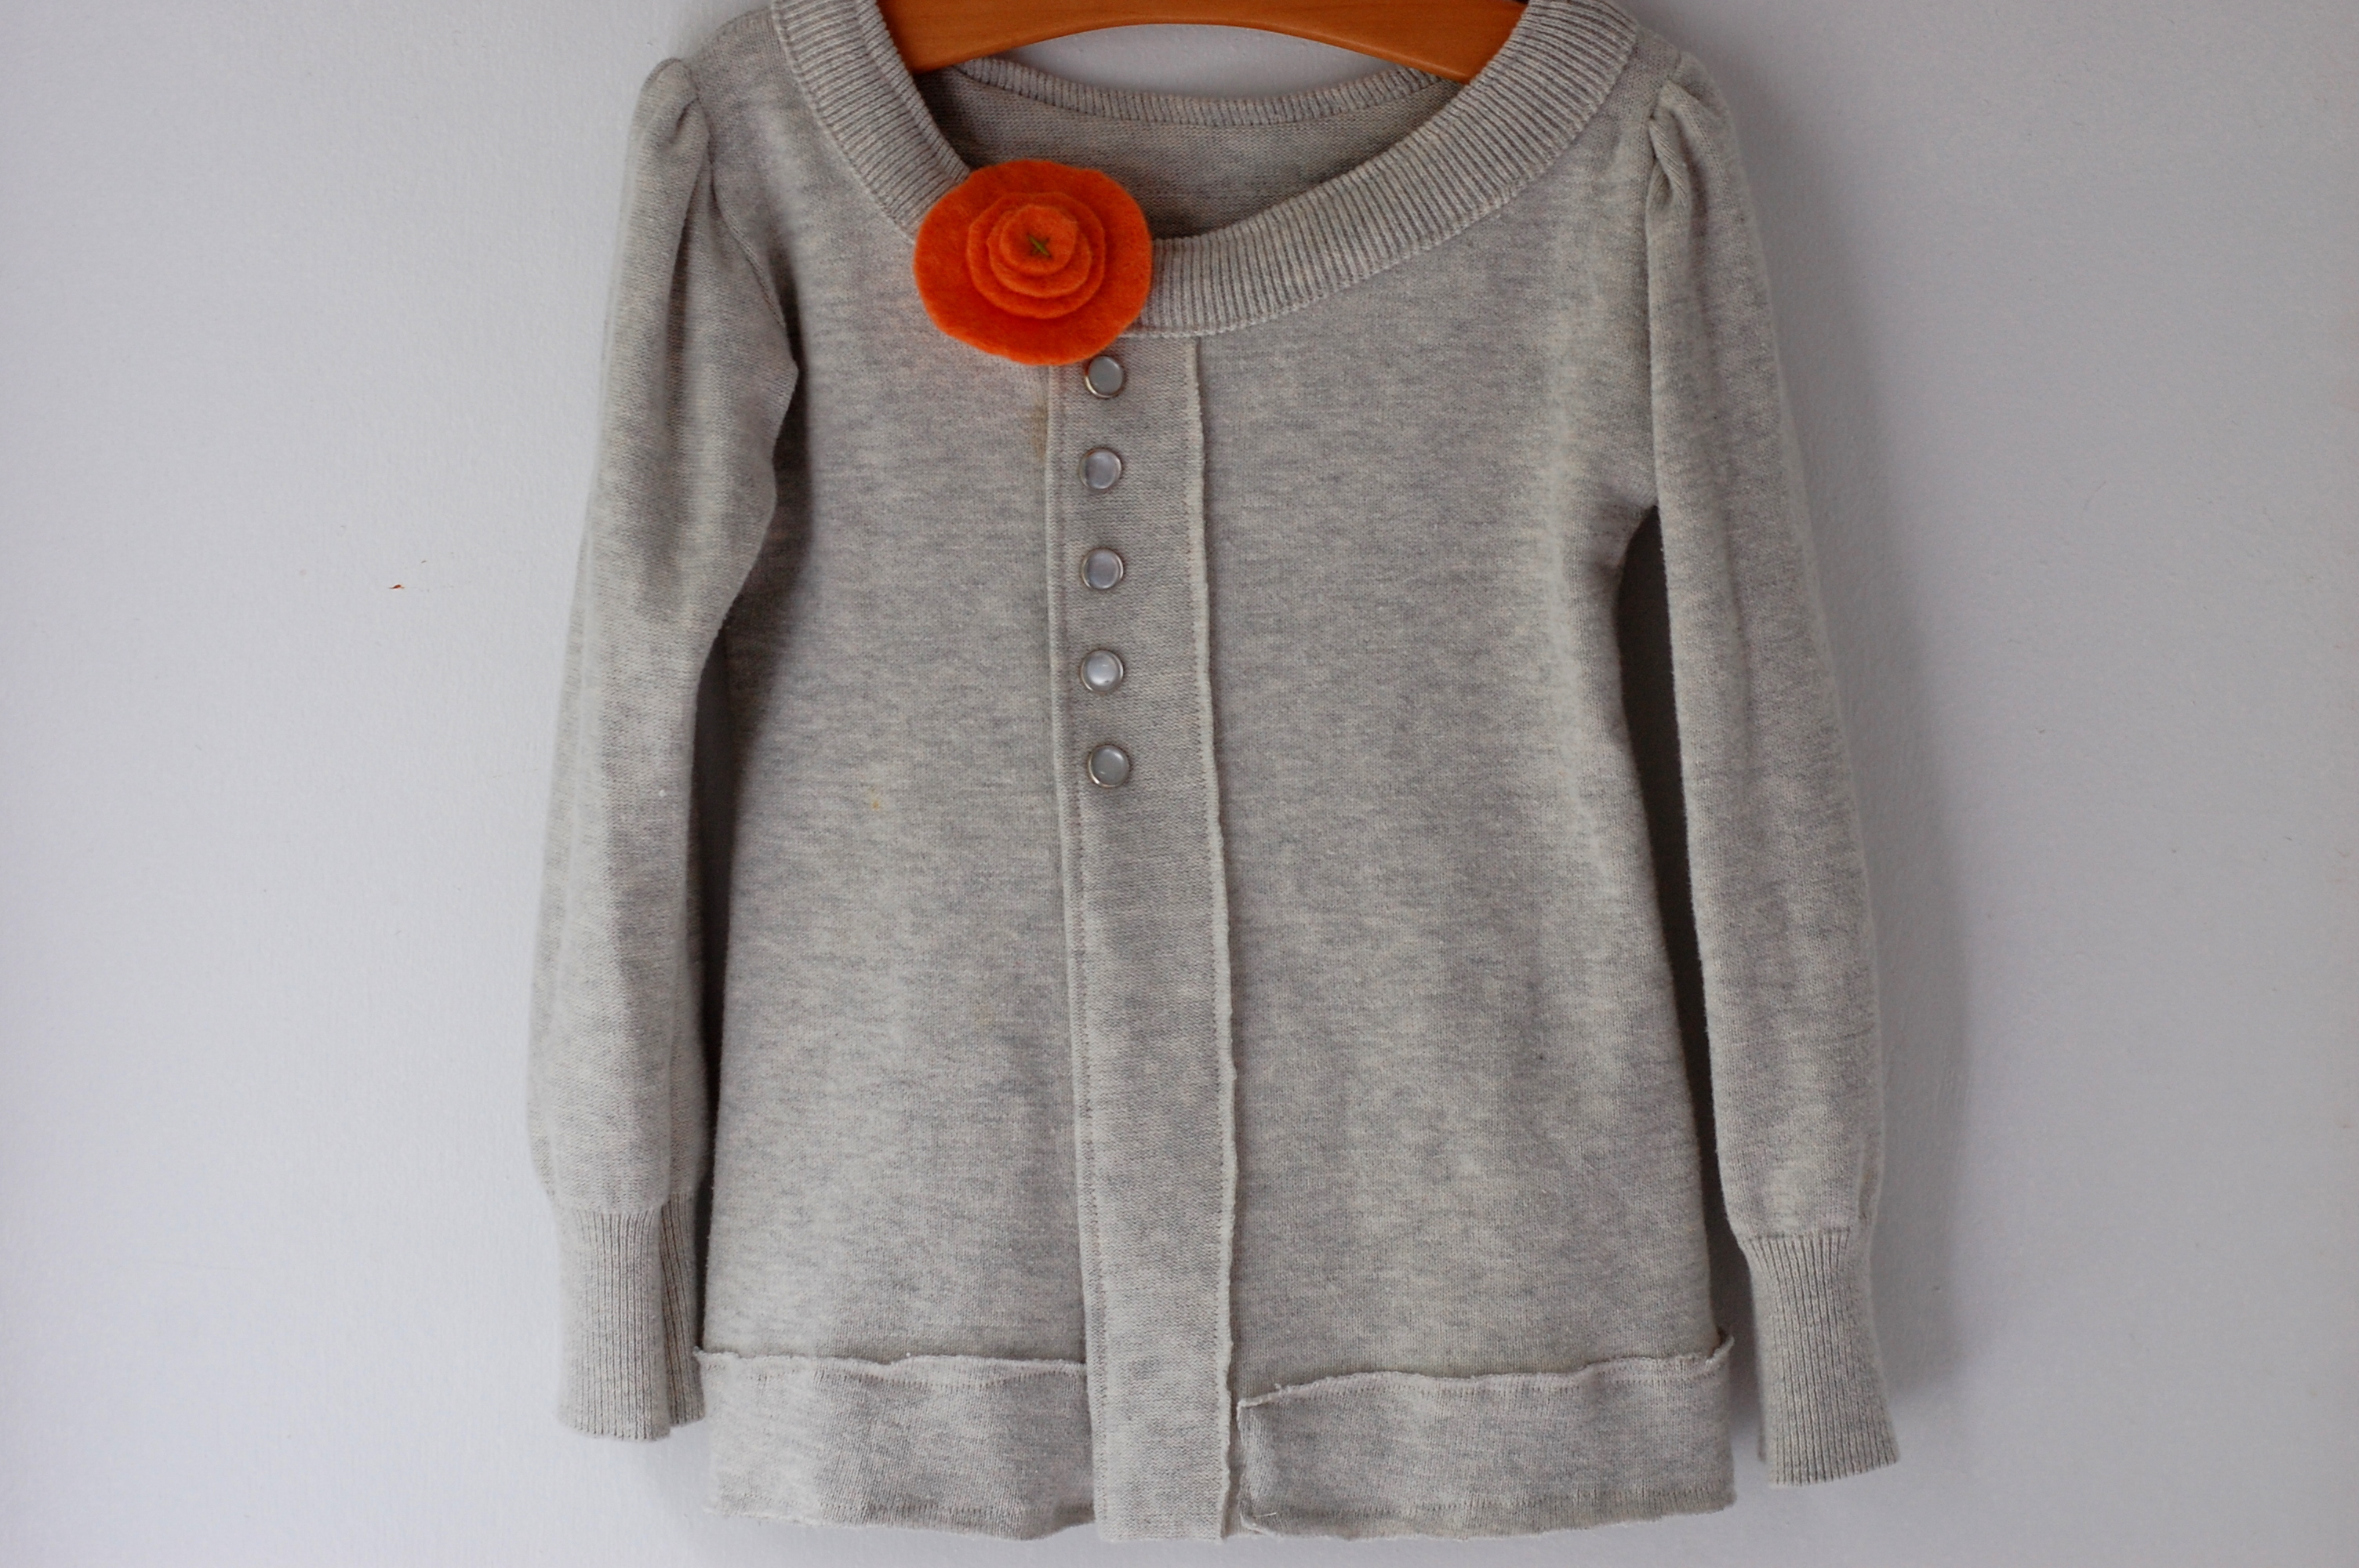 UPcycled: dad's sweater into girl's cardigan (kcwc day 2) | HUNGIE ...